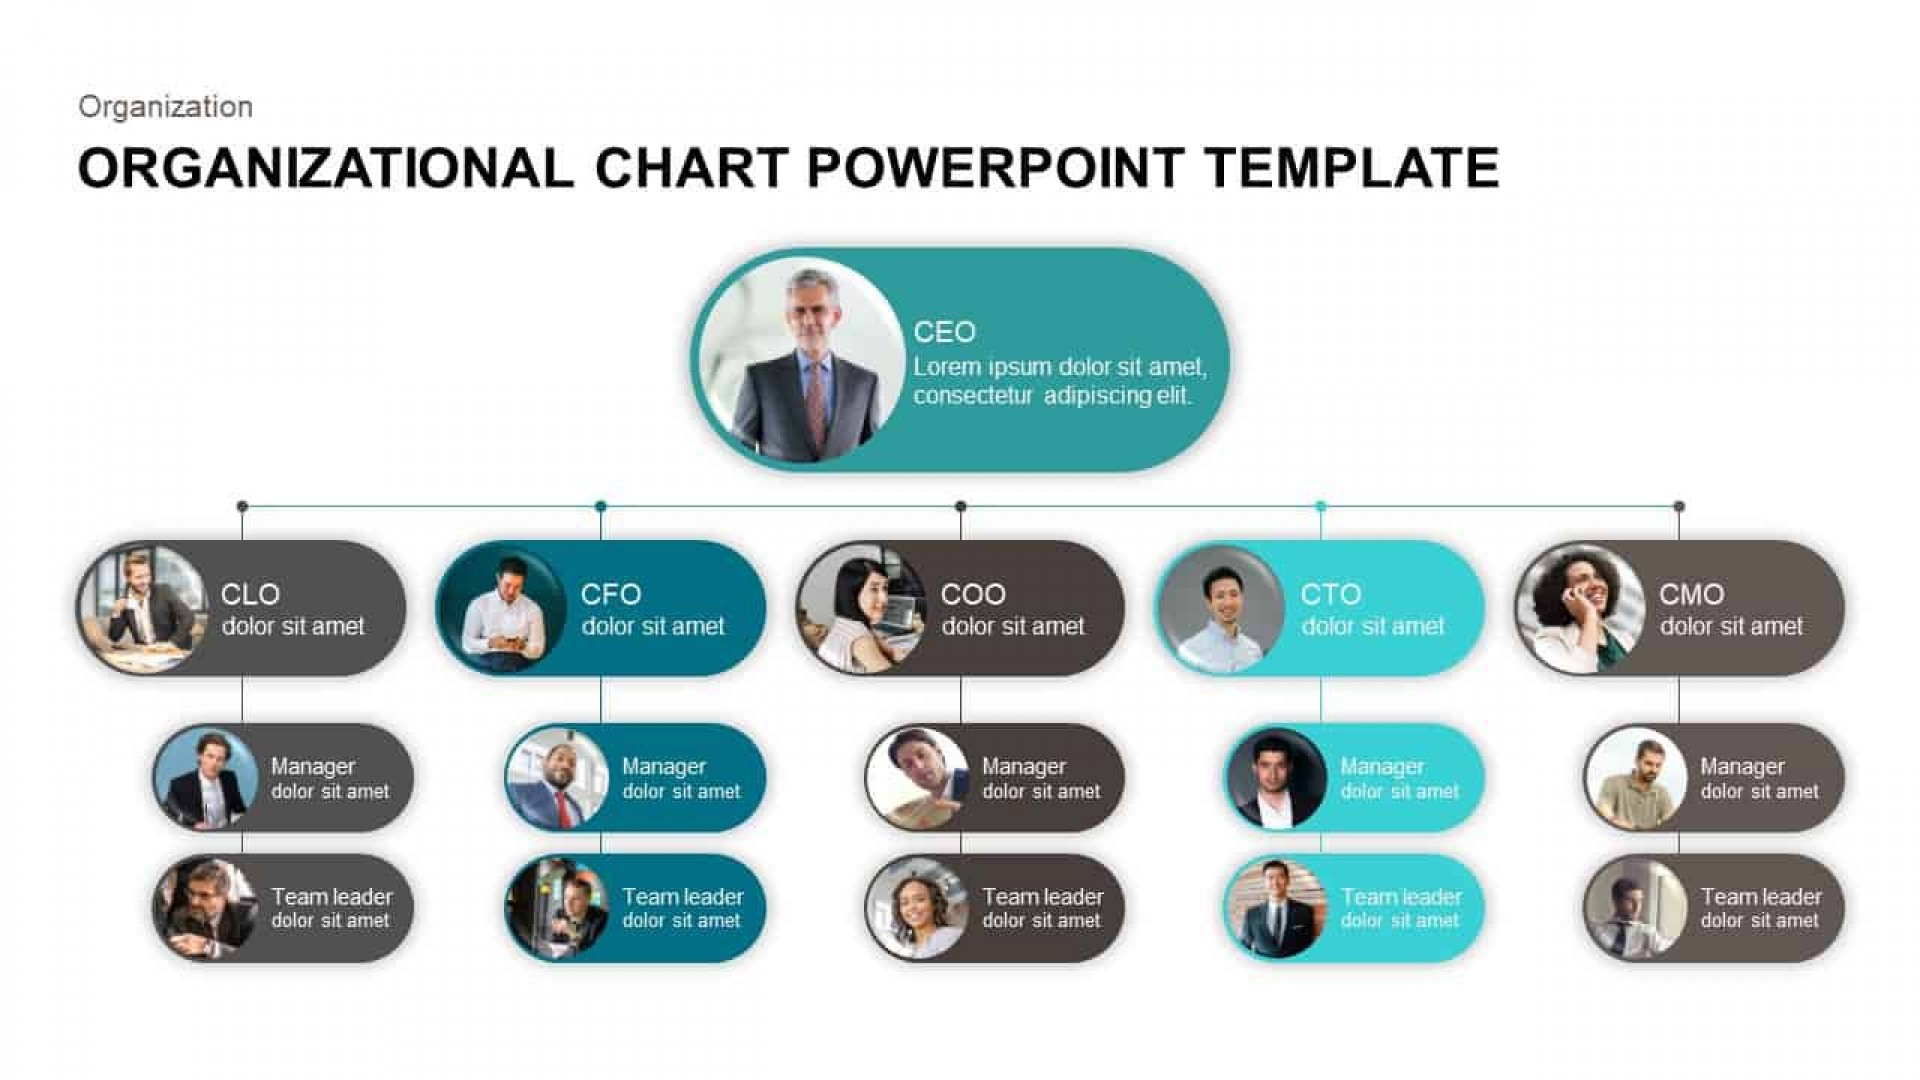 006 Simple Org Chart Template Powerpoint Image  Free Organization Download Organizational 20101920